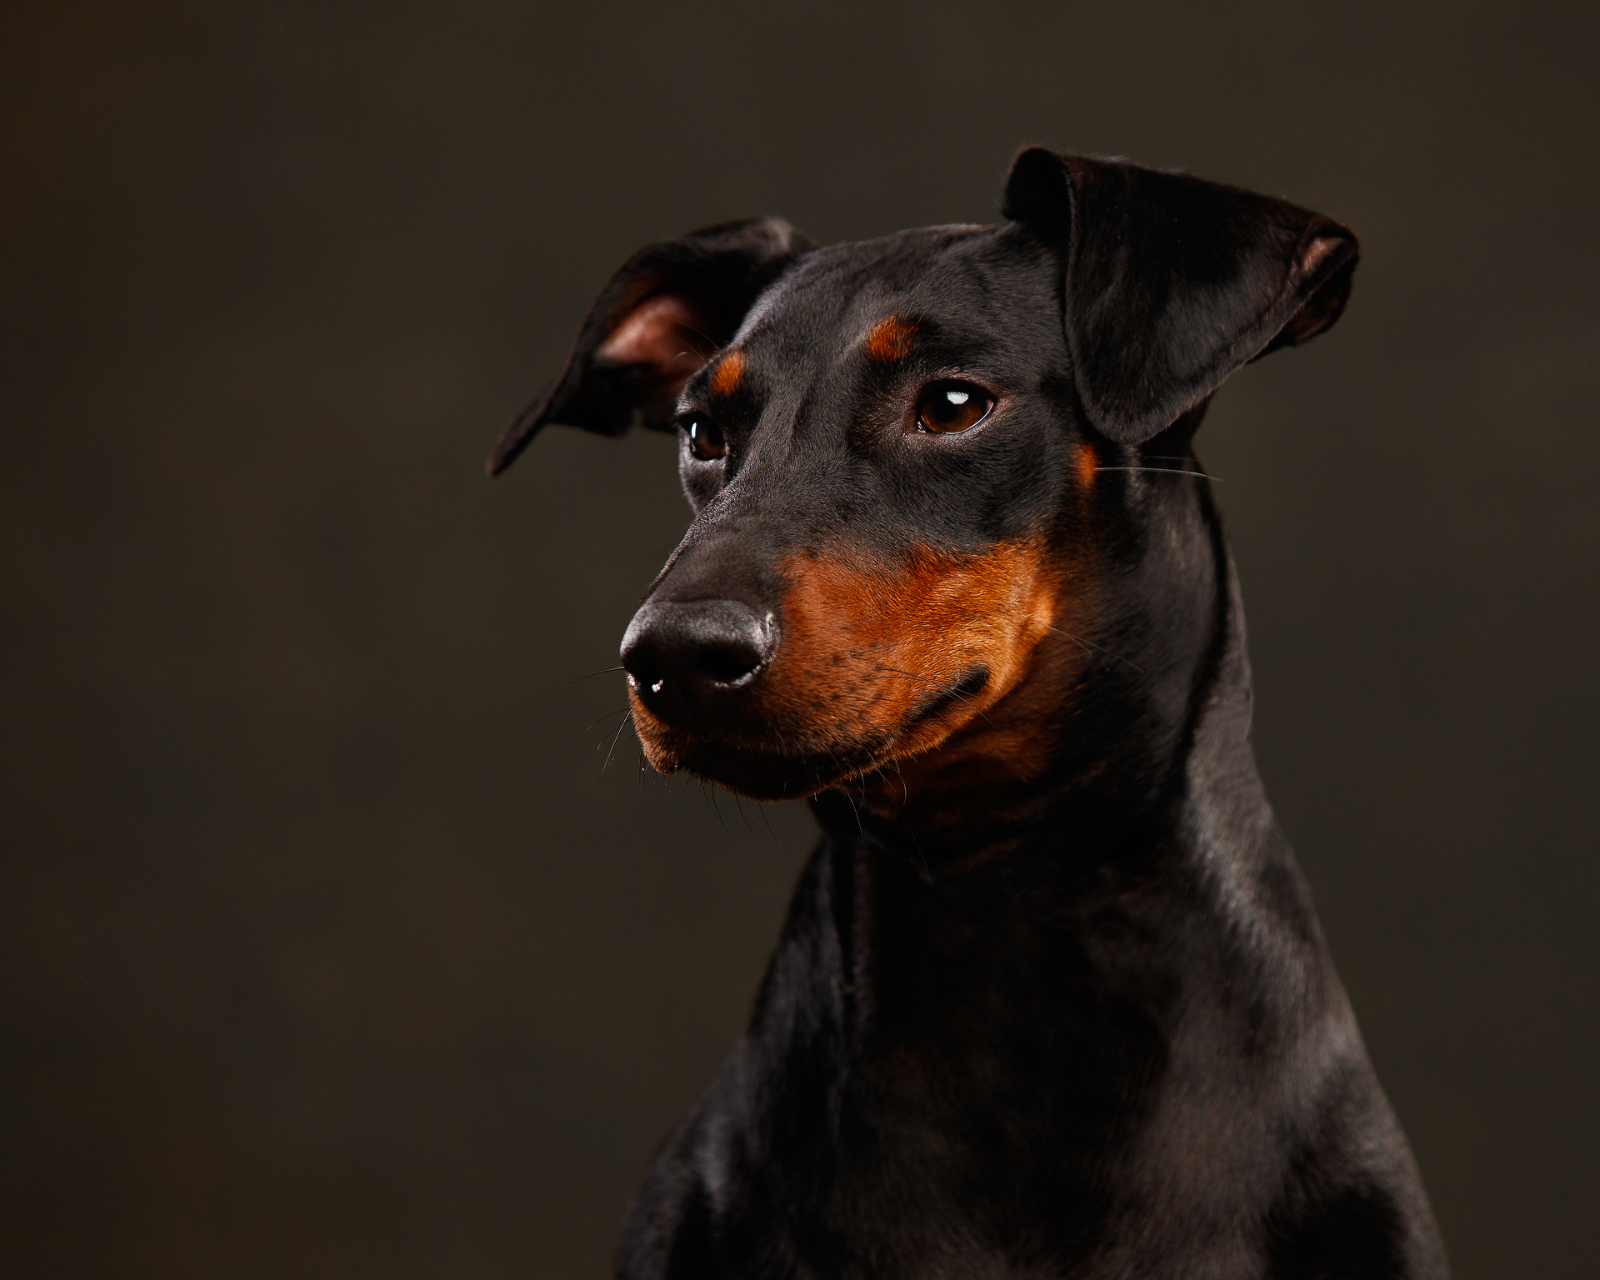 Black and tan dog portrait photo